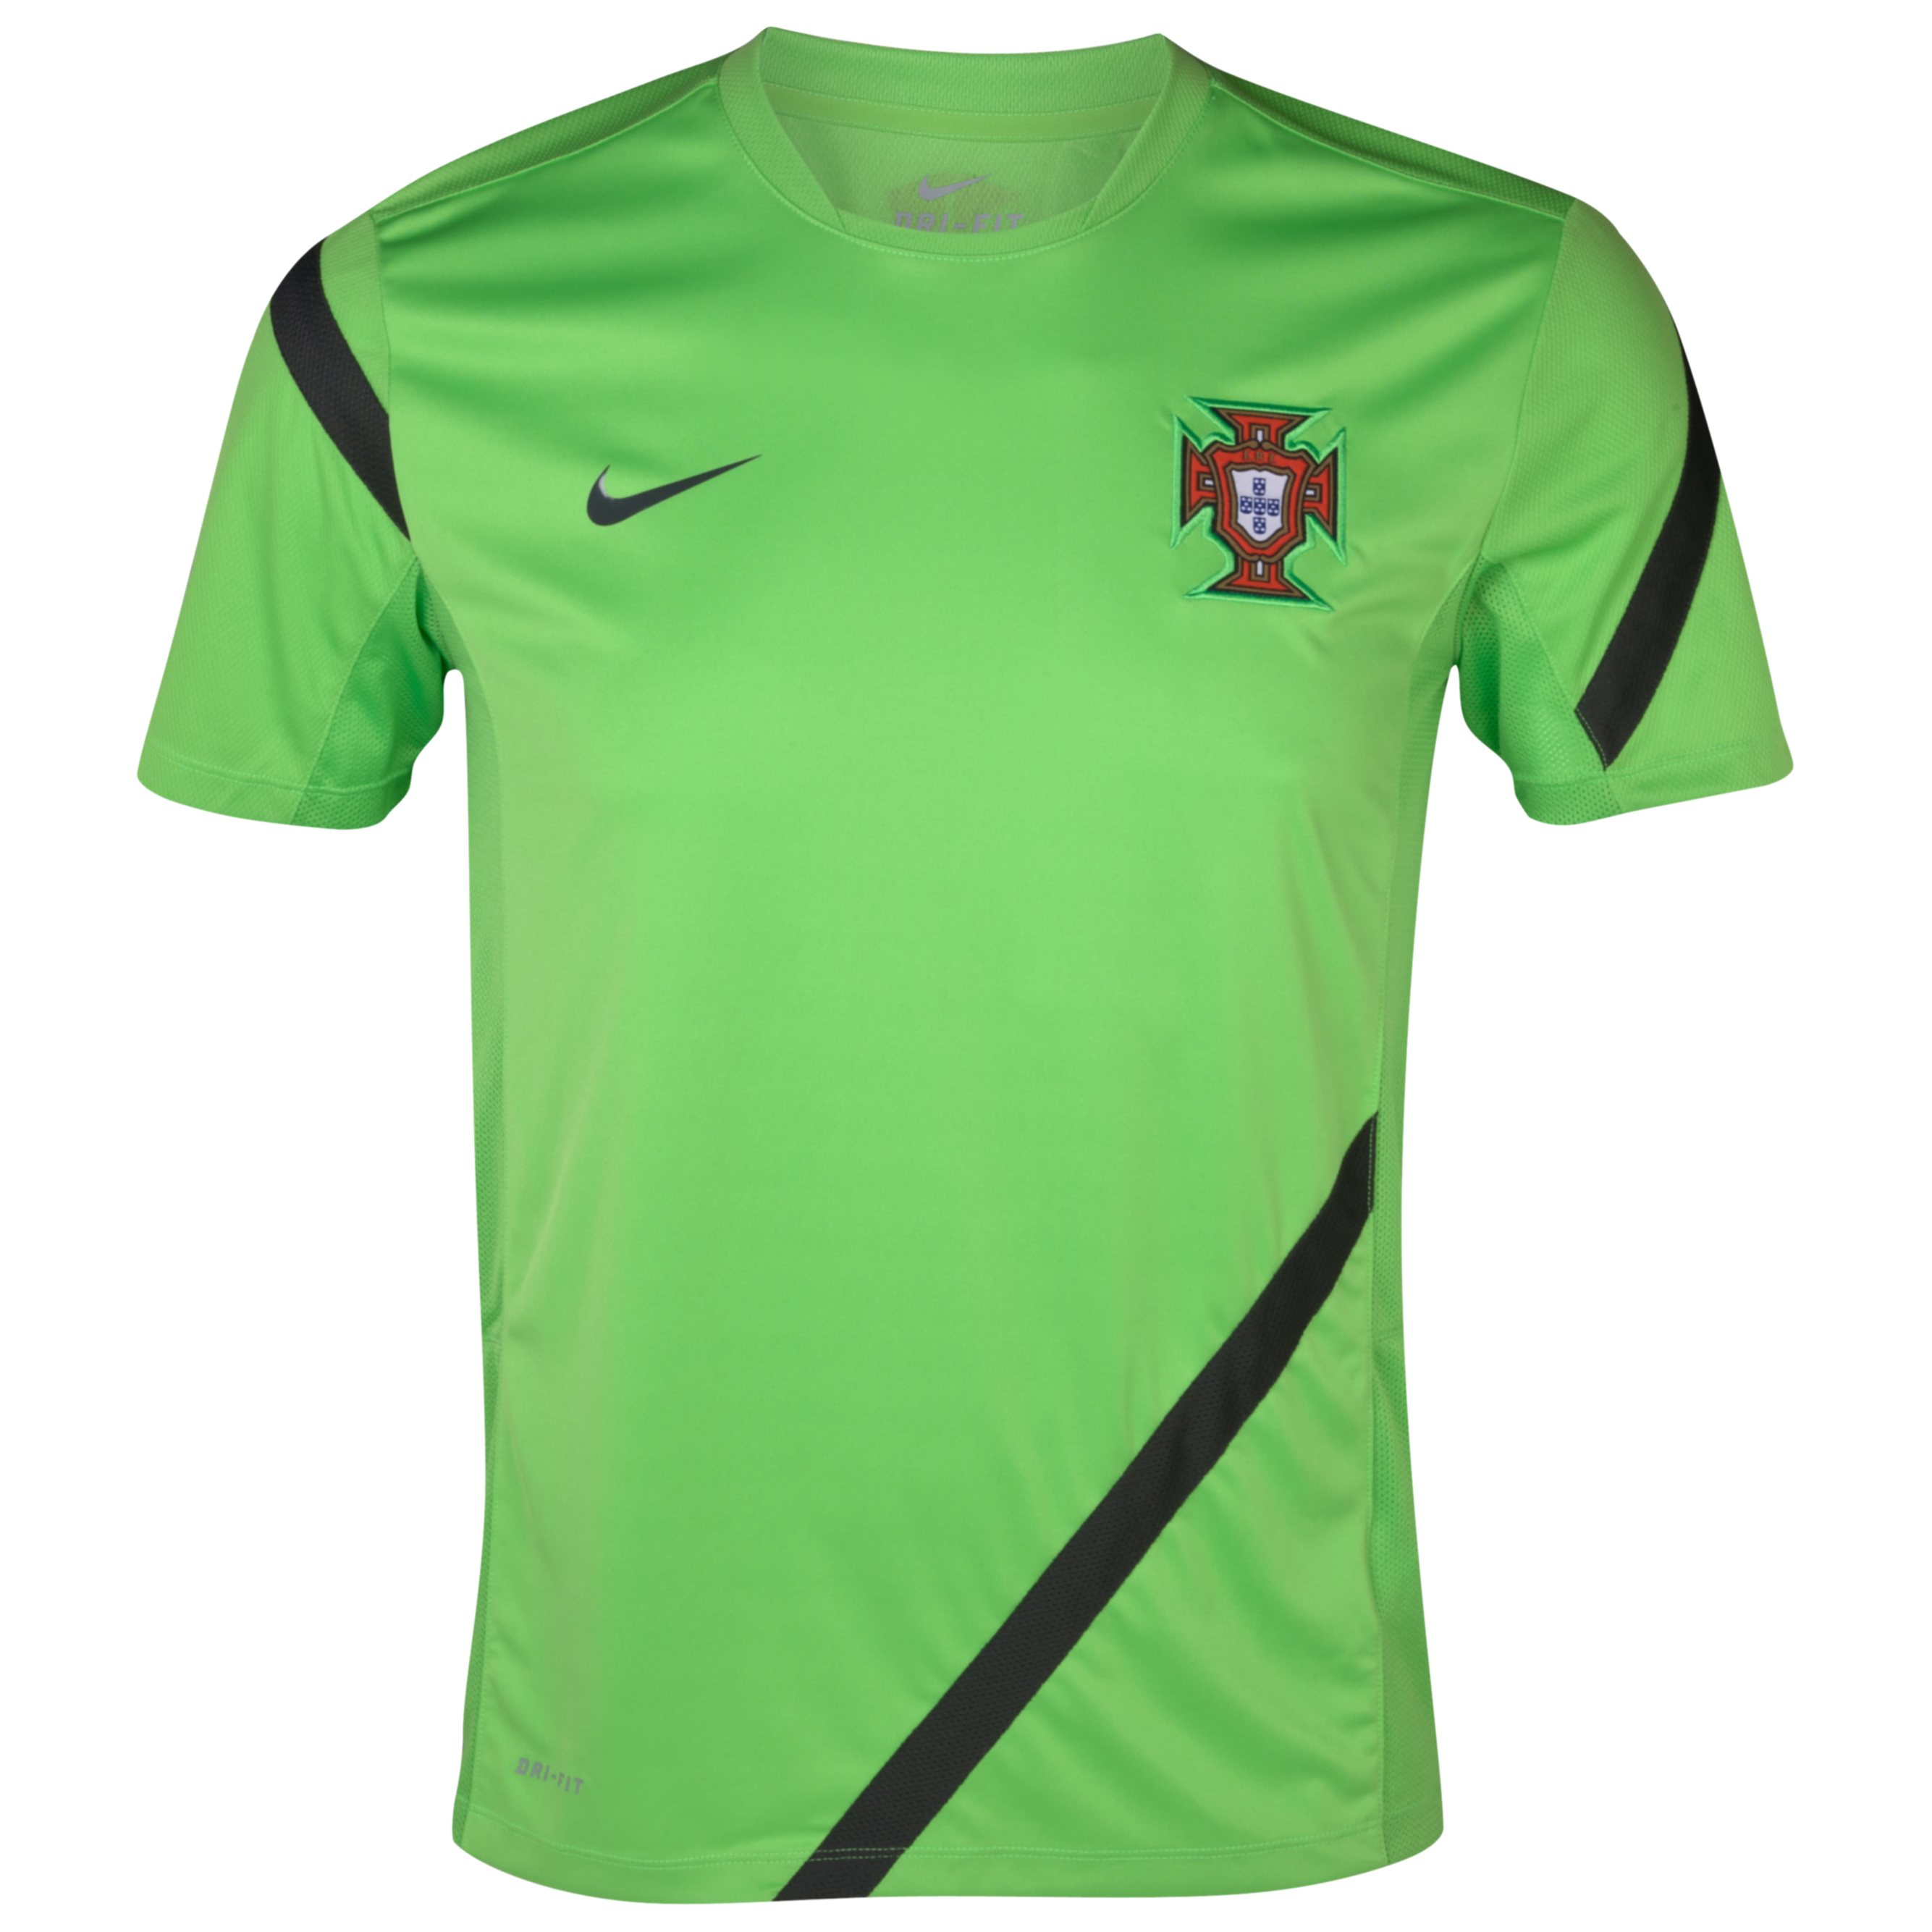 Portugal Training Top - Action Green/Anthracite